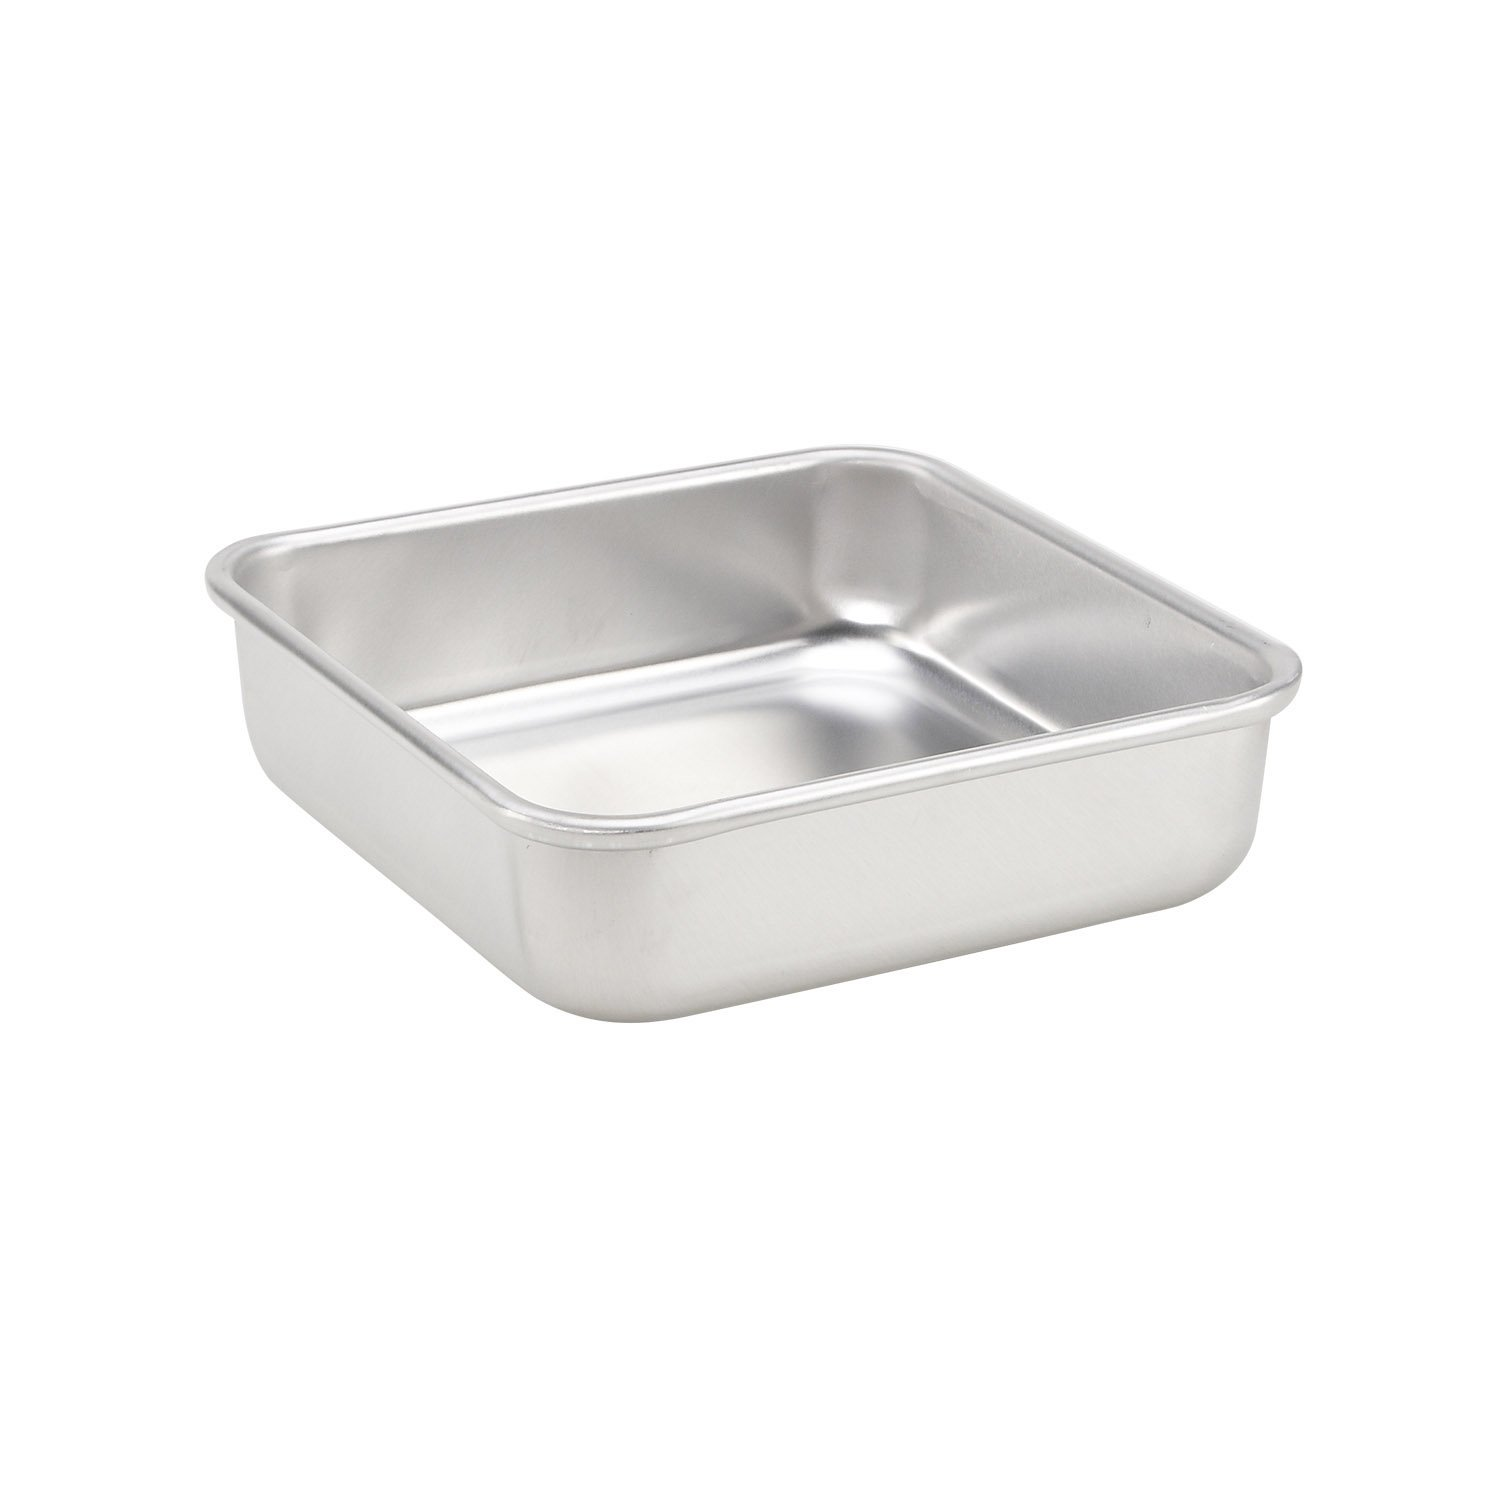 Sweet Creations 4826 Pure Aluminum Square Cake Pan